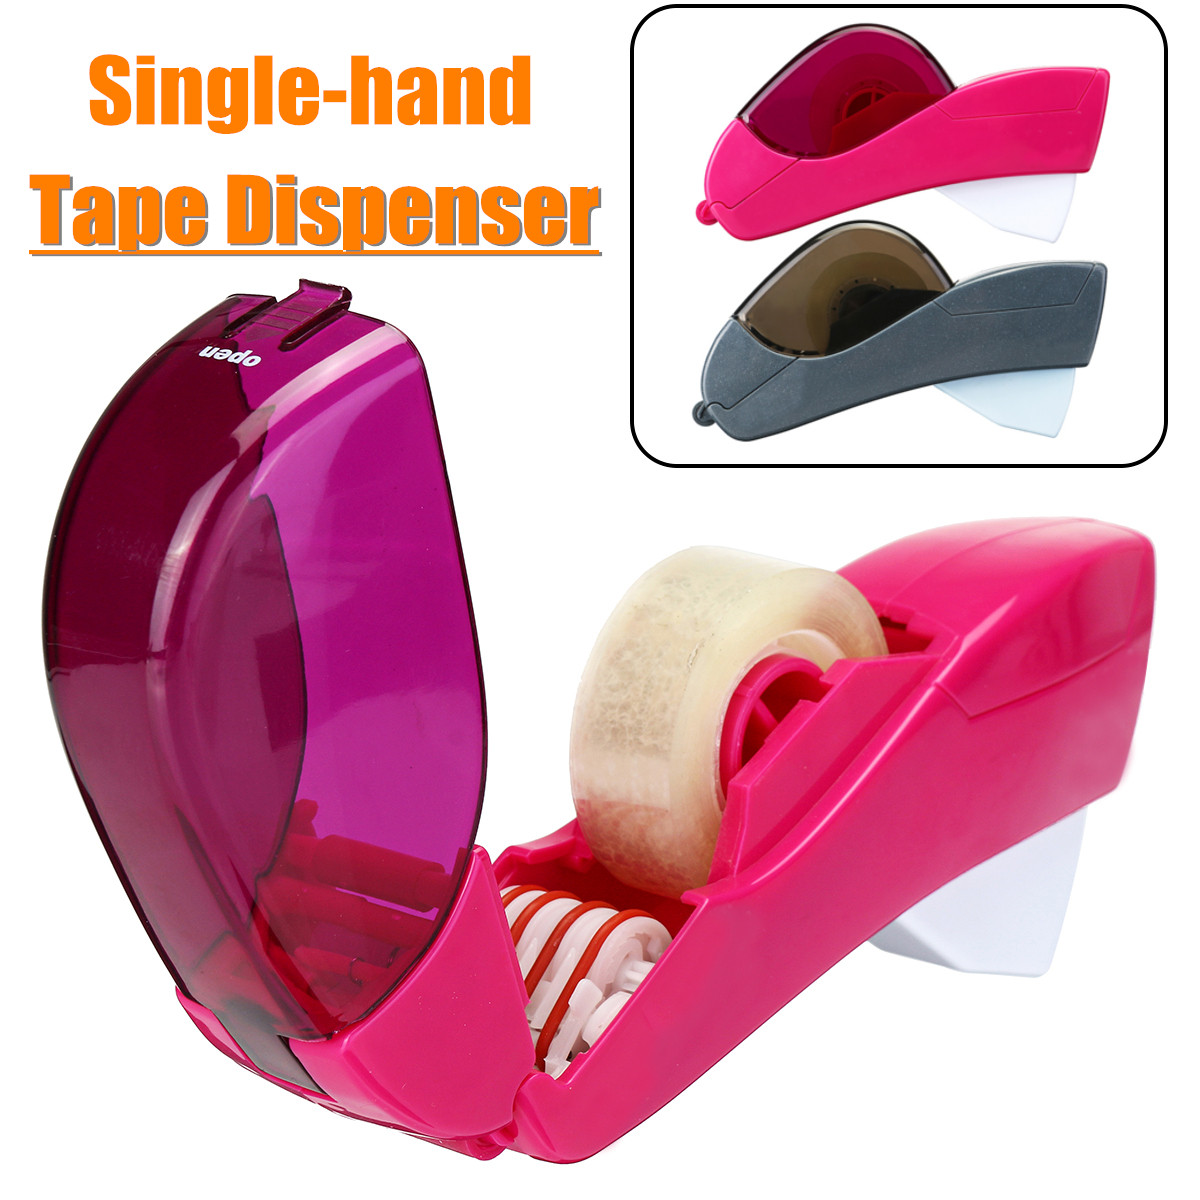 Automatic One Press Tape Dispenser For Gift Wrapping Scrap Booking Book Cover